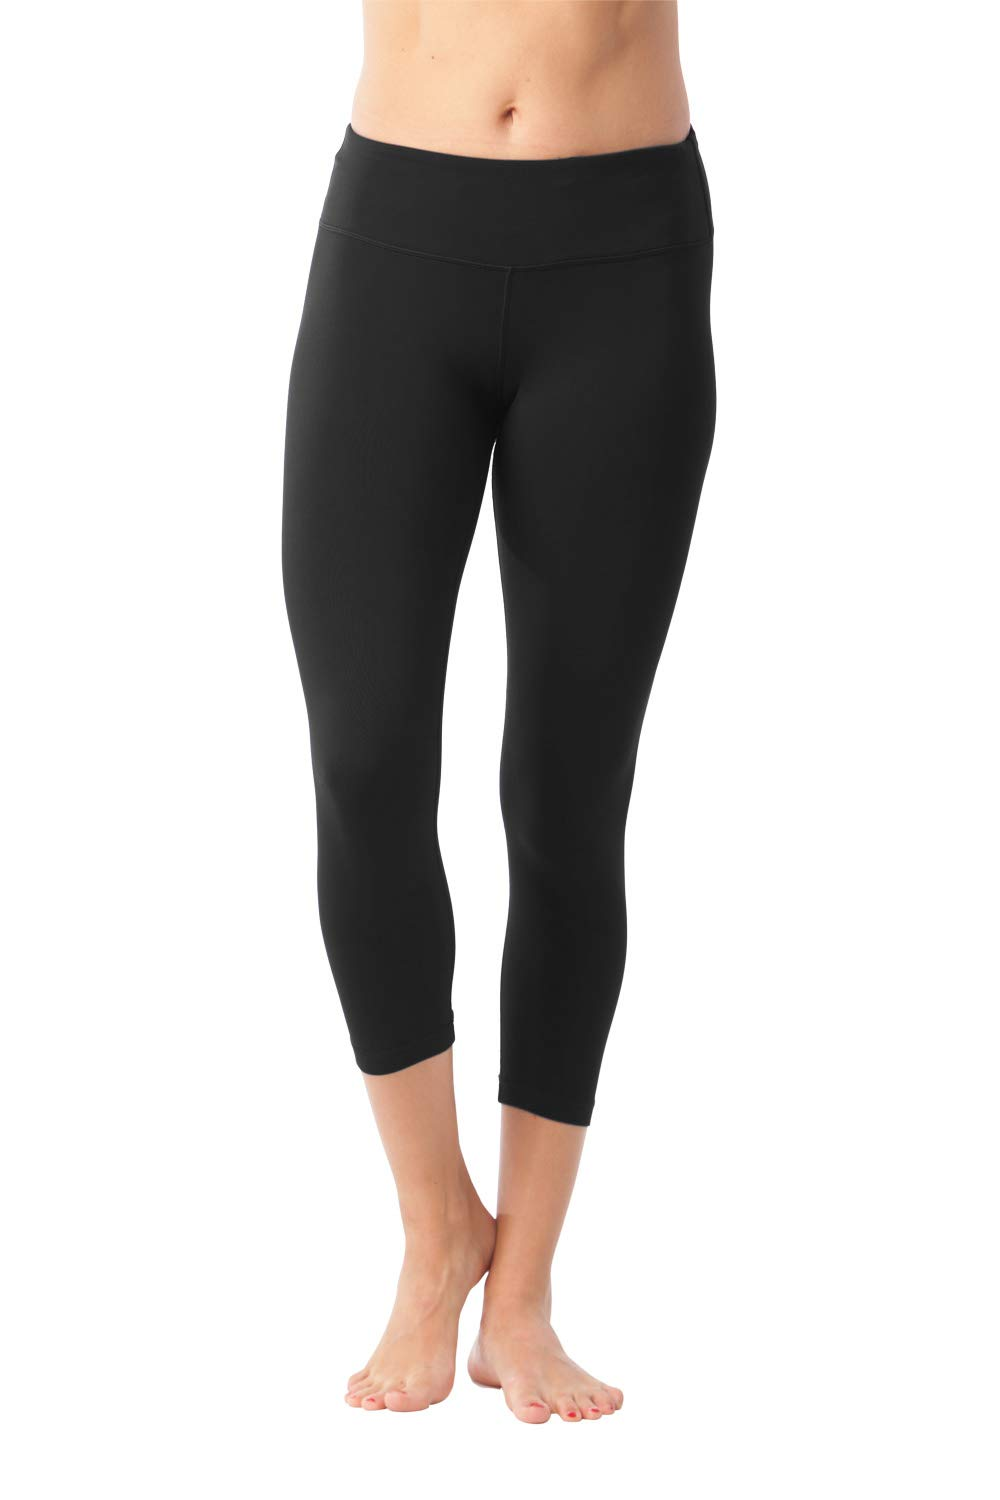 90 Degree By Reflex Yoga Capris - Yoga Capris for Women - Hidden Pocket, 22inch, Black, XS